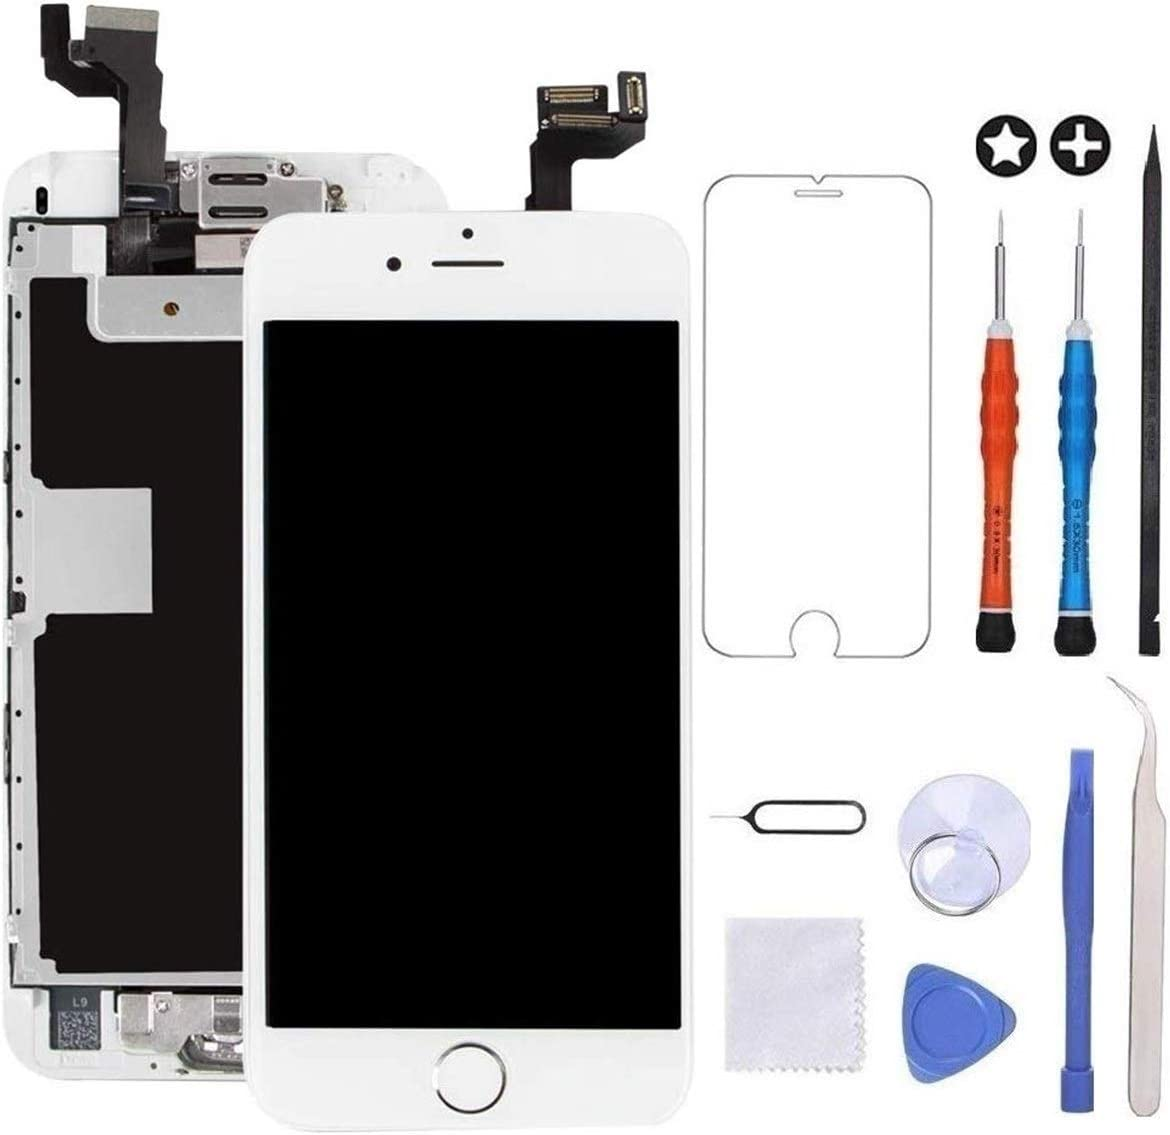 GULEEK for iPhone 6s Screen Replacement White Touch Display LCD Digitizer Full Assembly with Front Camera,Proximity Sensor,Ear Speaker and Home Button Including Repair Tool and Screen Protector